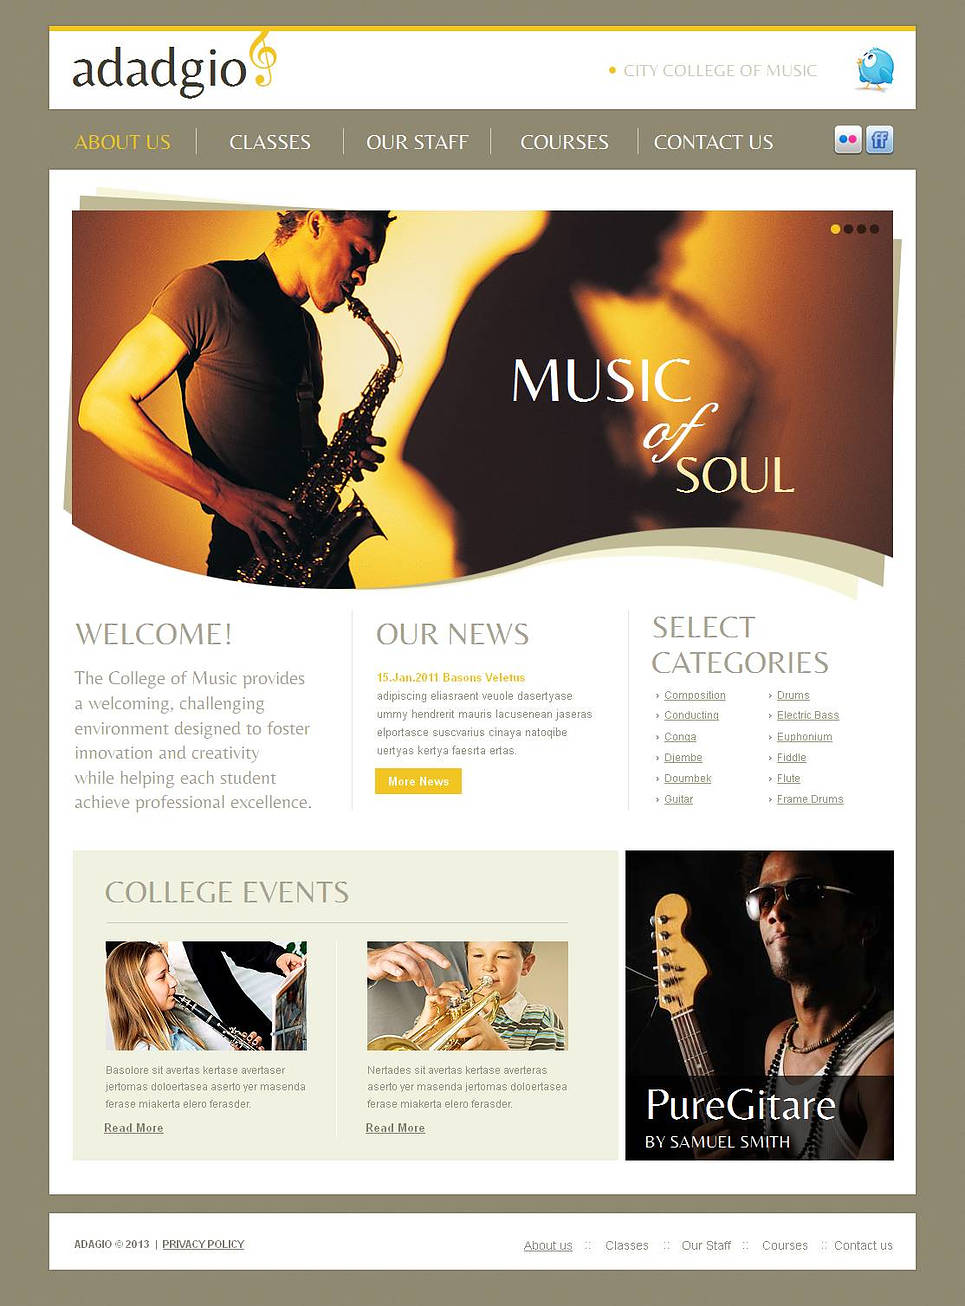 Music School Web Template with Creative Image Slider Design - image